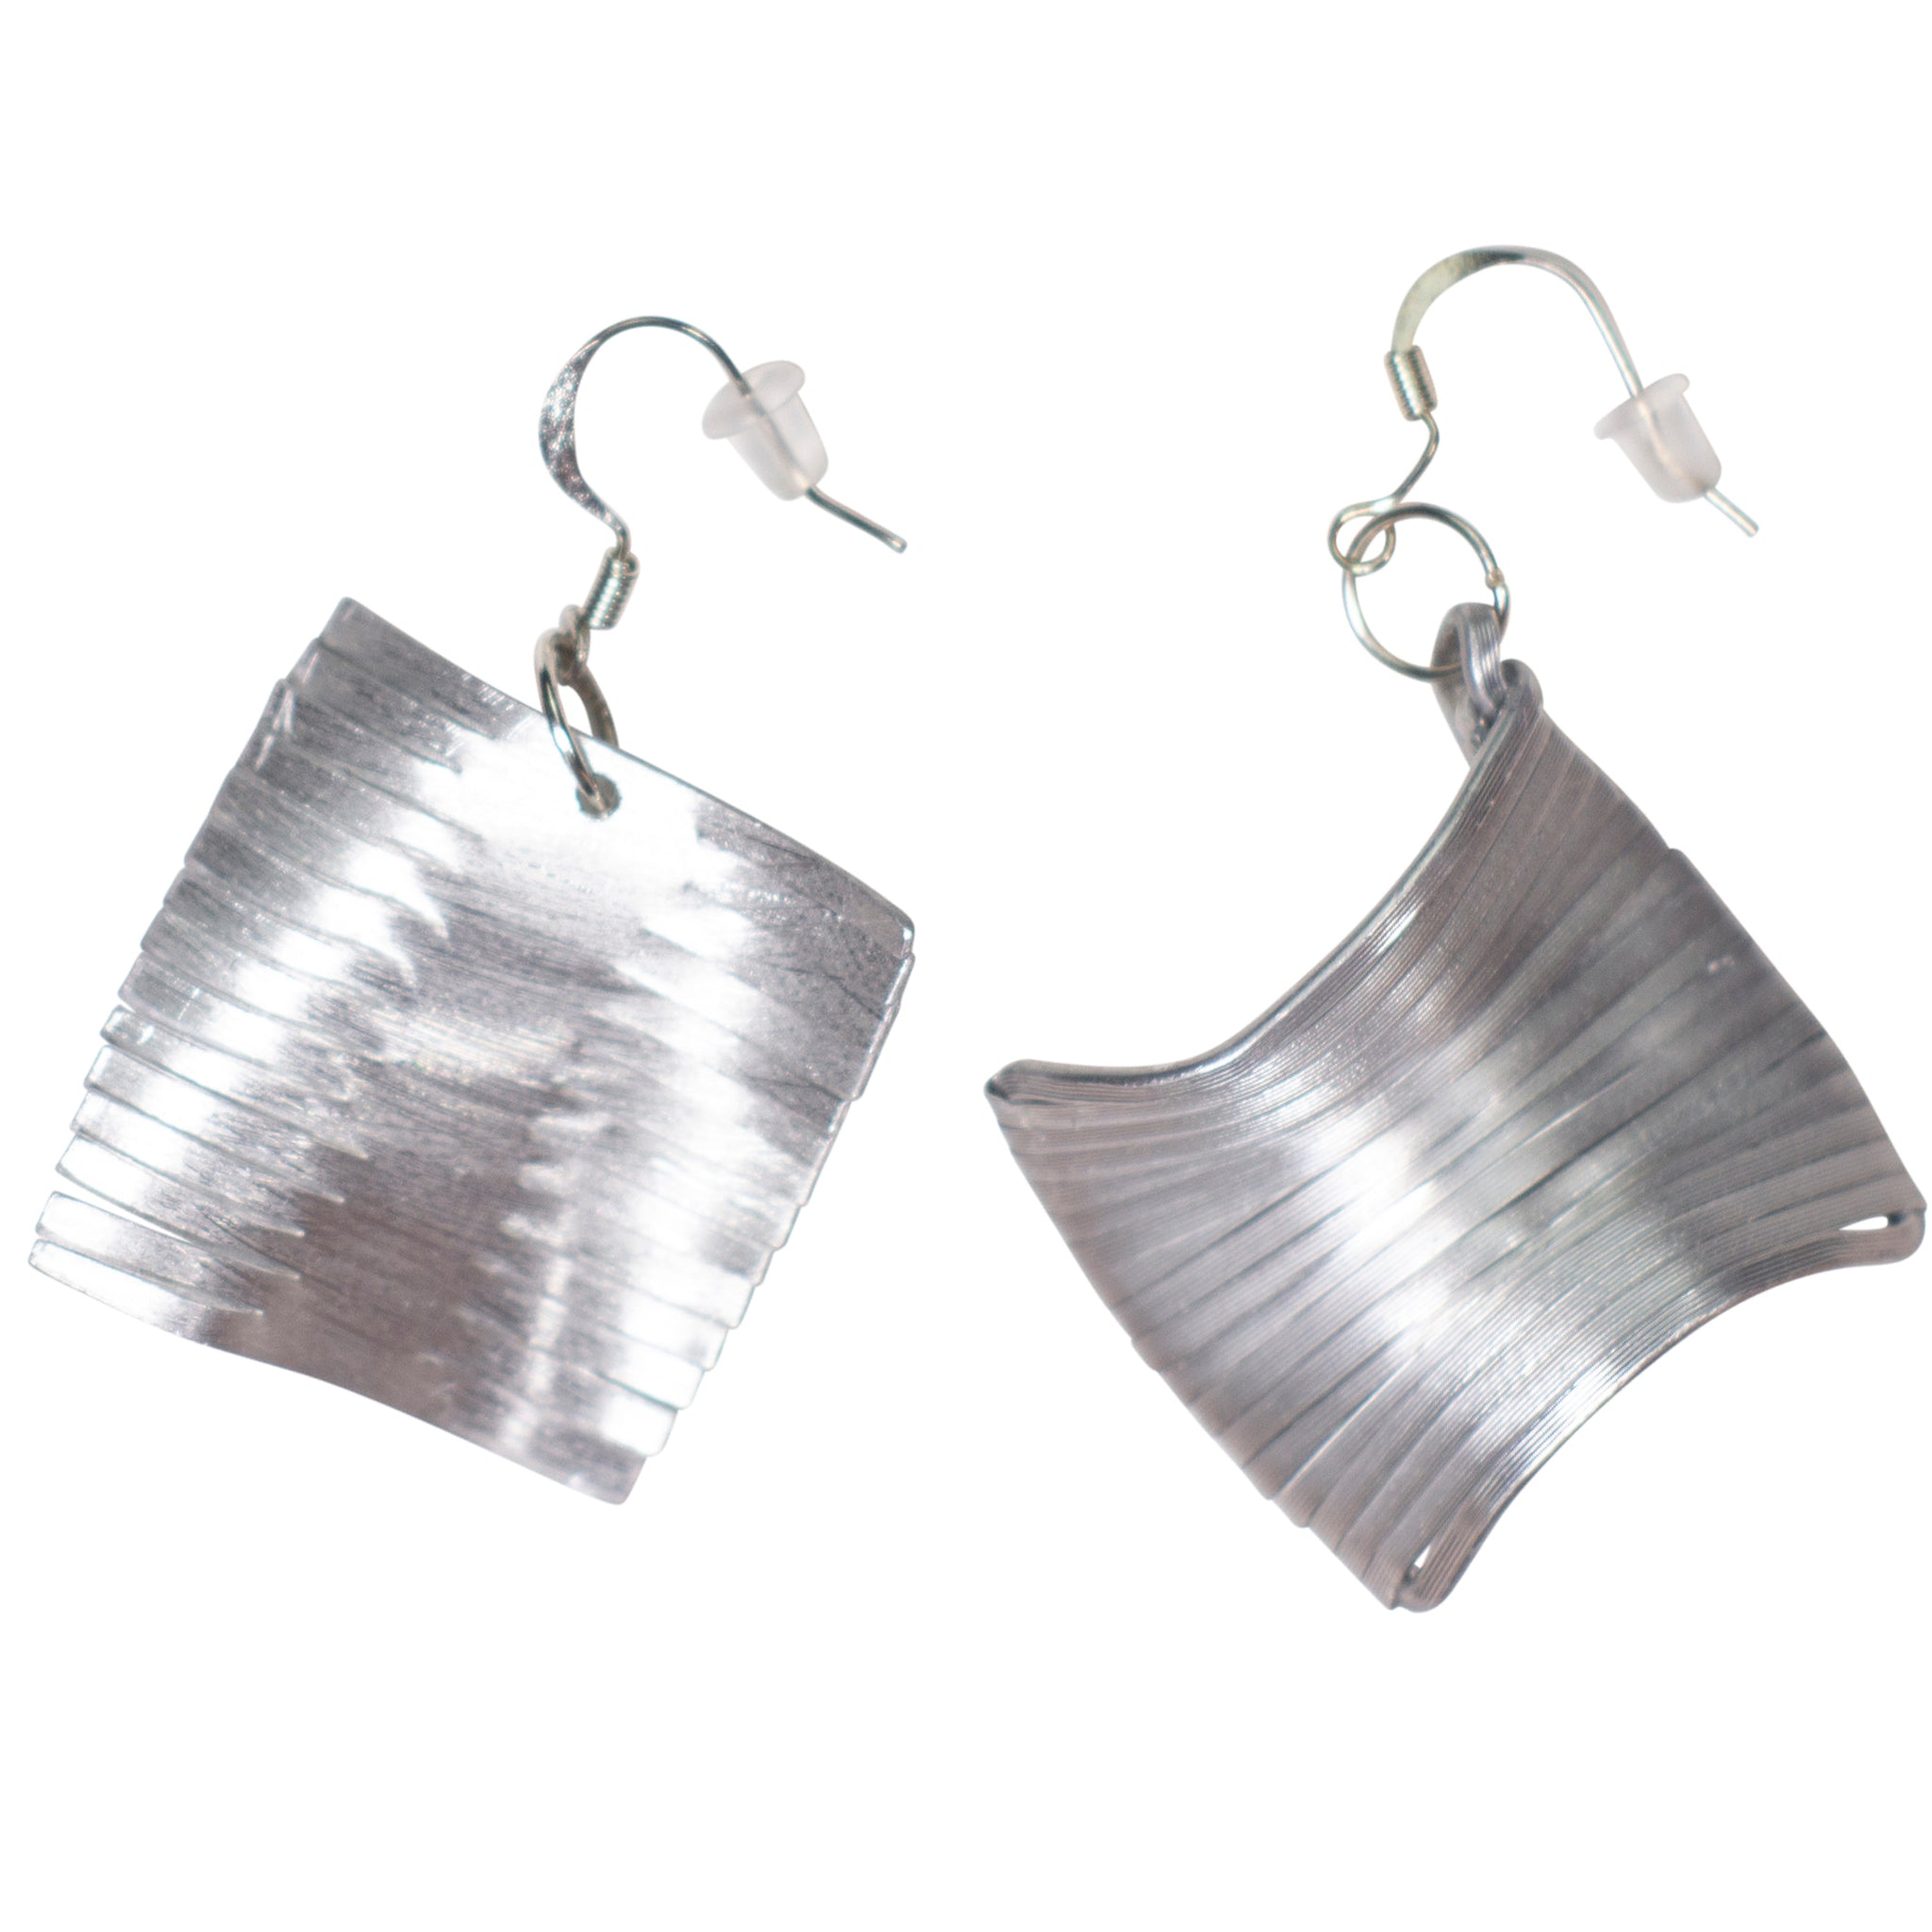 Recycled Croatian aluminum earrings